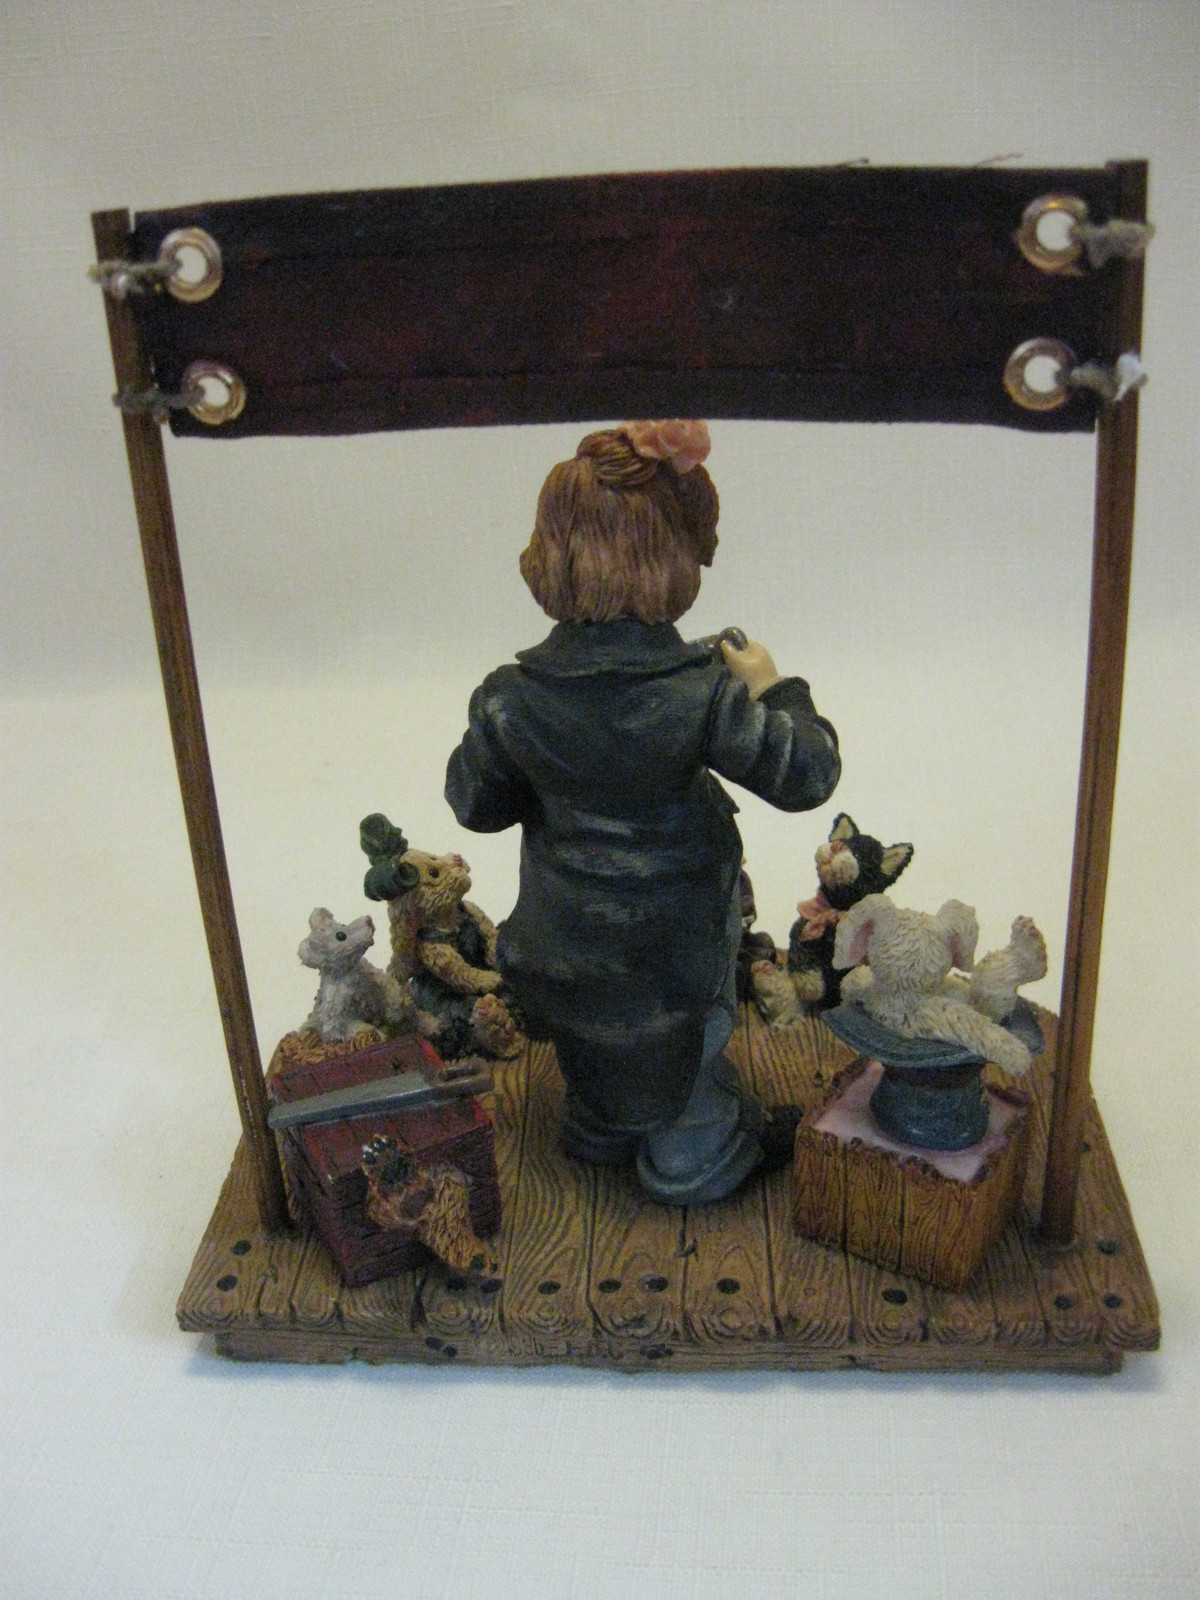 Yesterdays Child Figurine The Magic Show at 4 Limited Edition Boyd's Collection image 5